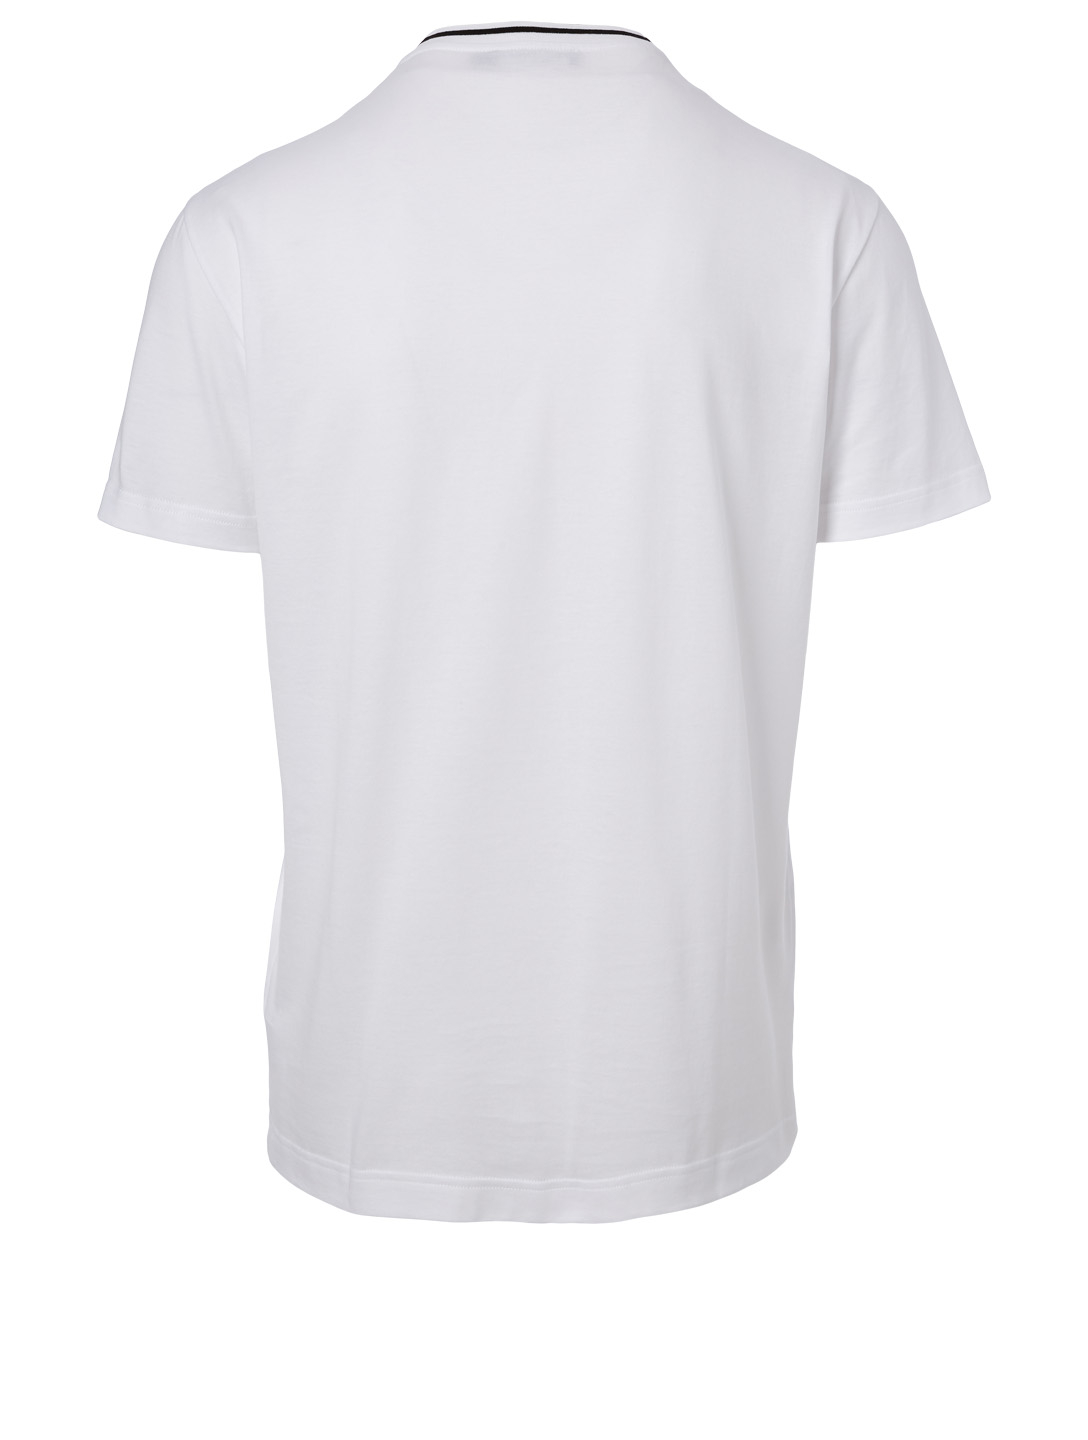 DOLCE & GABBANA Cotton Logo Tape T-Shirt Men's White